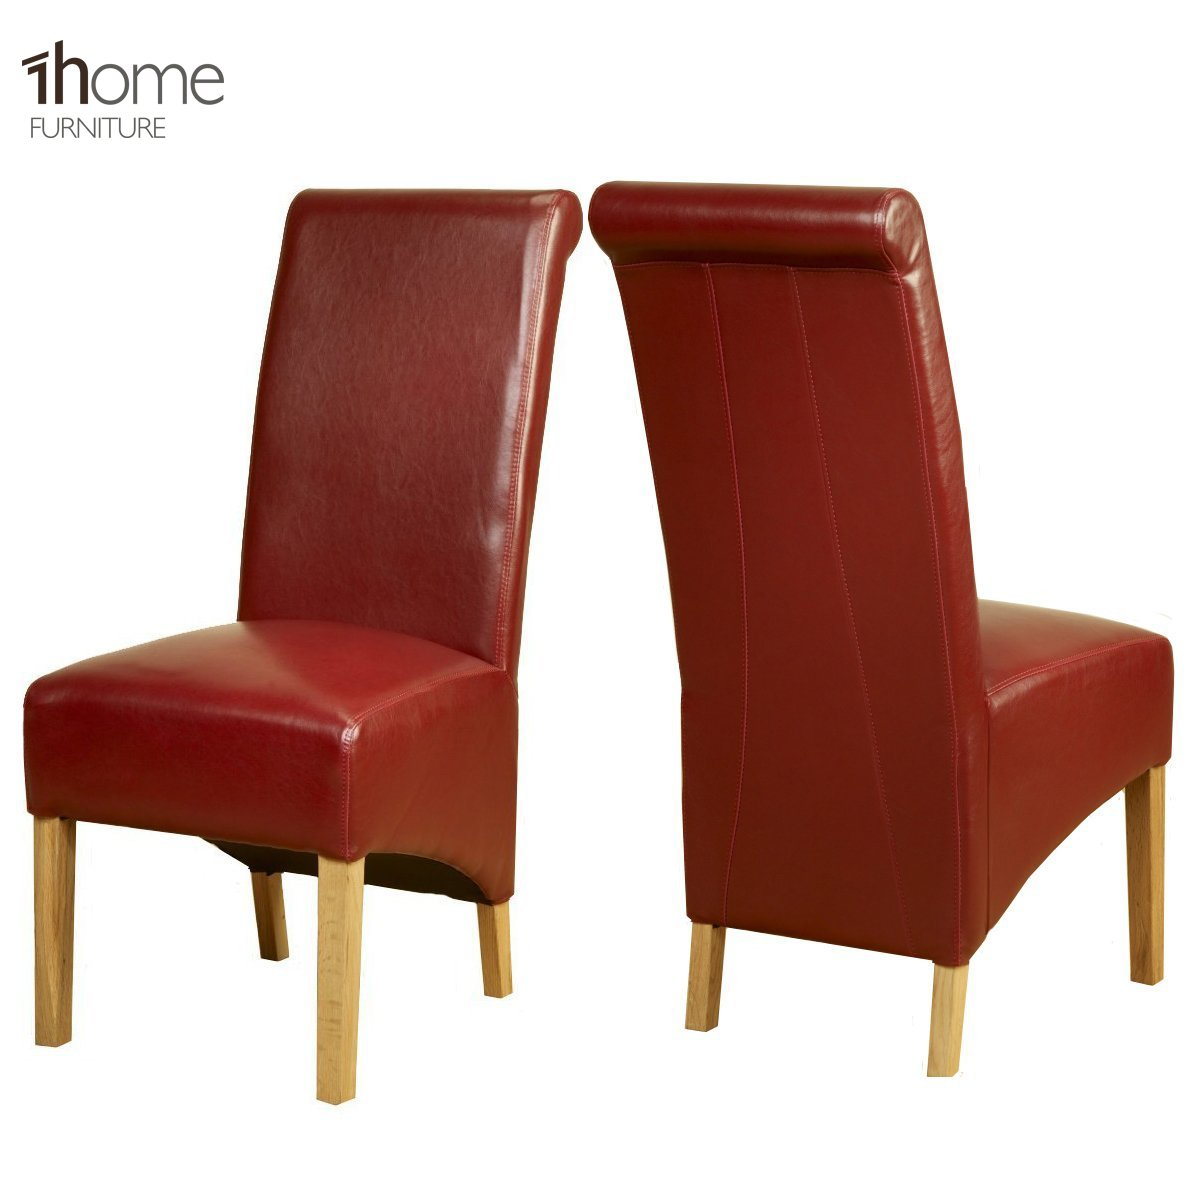 1home Leather Dining Chairs Scroll High Top Back Oak Legs ...